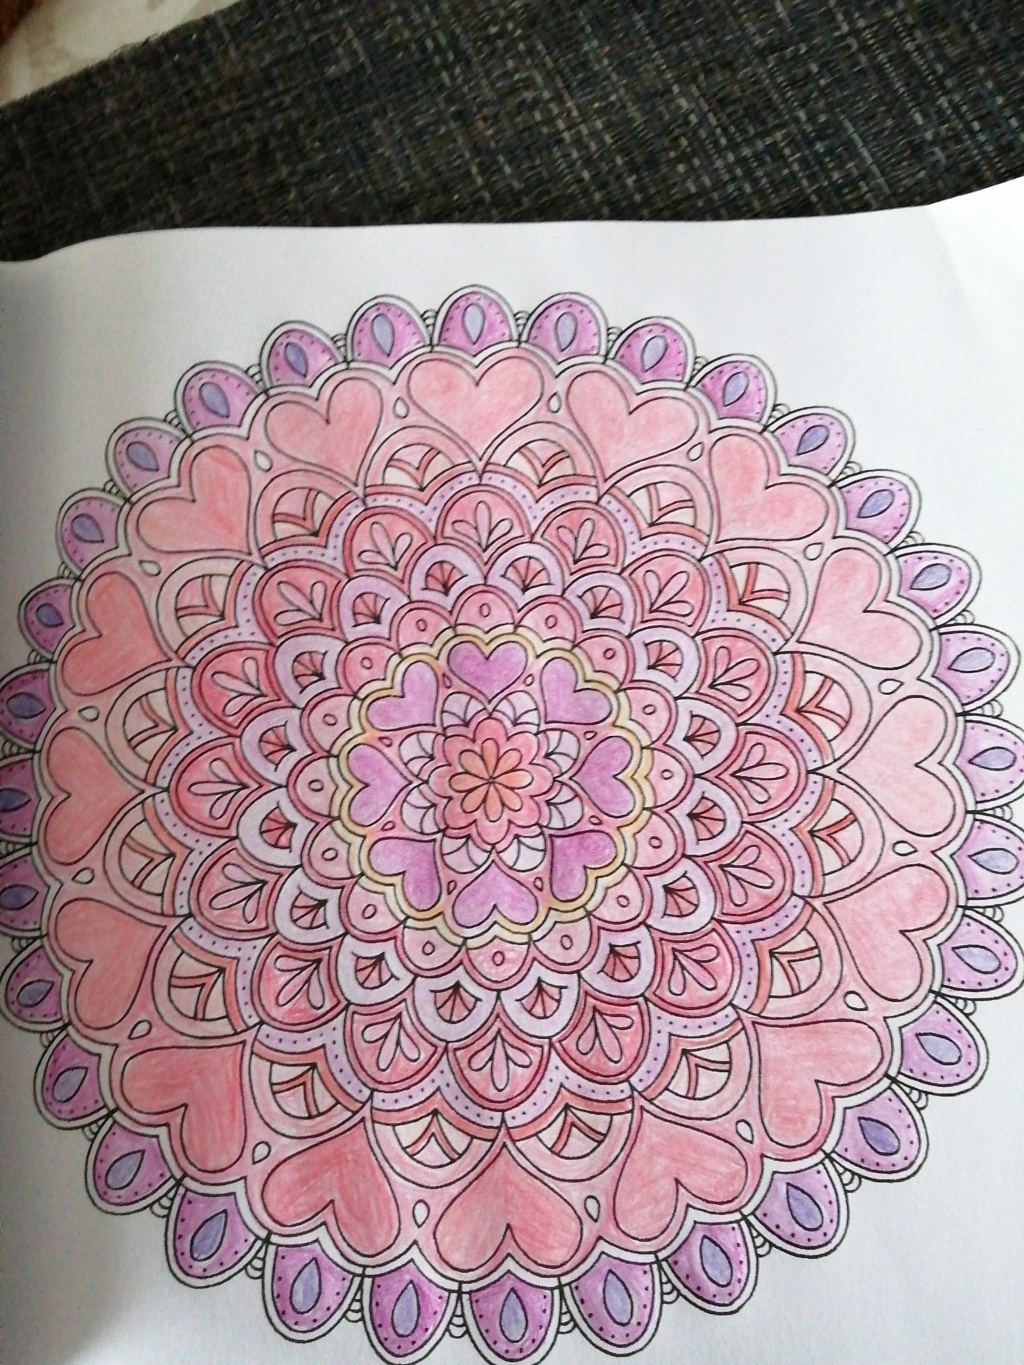 coloriage anti-stress pour adulte - Page 16 00112